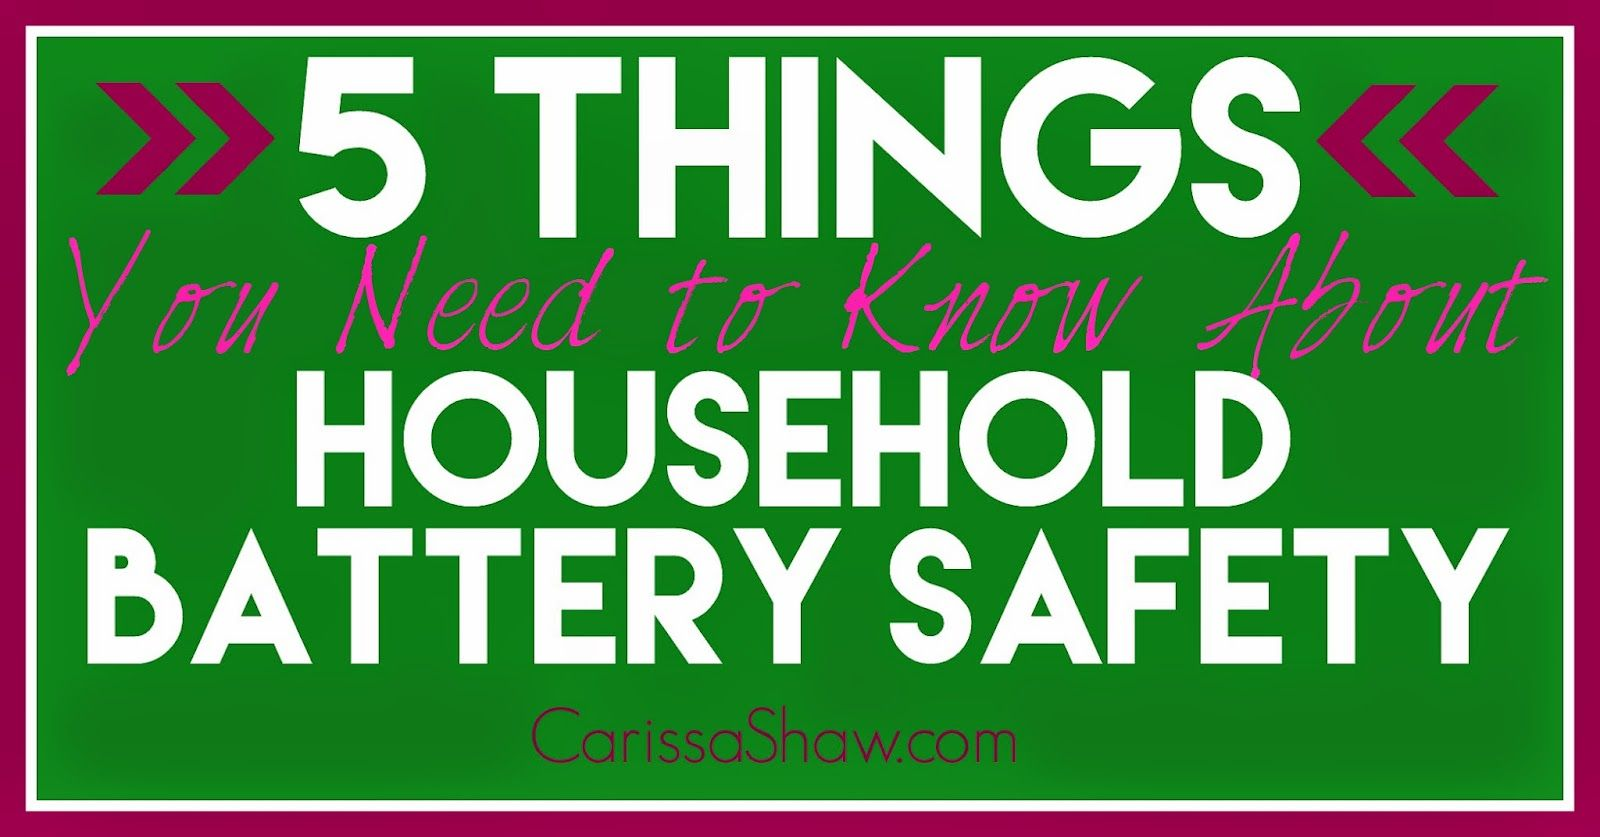 5 Things You Need To Know About Household Battery Safety